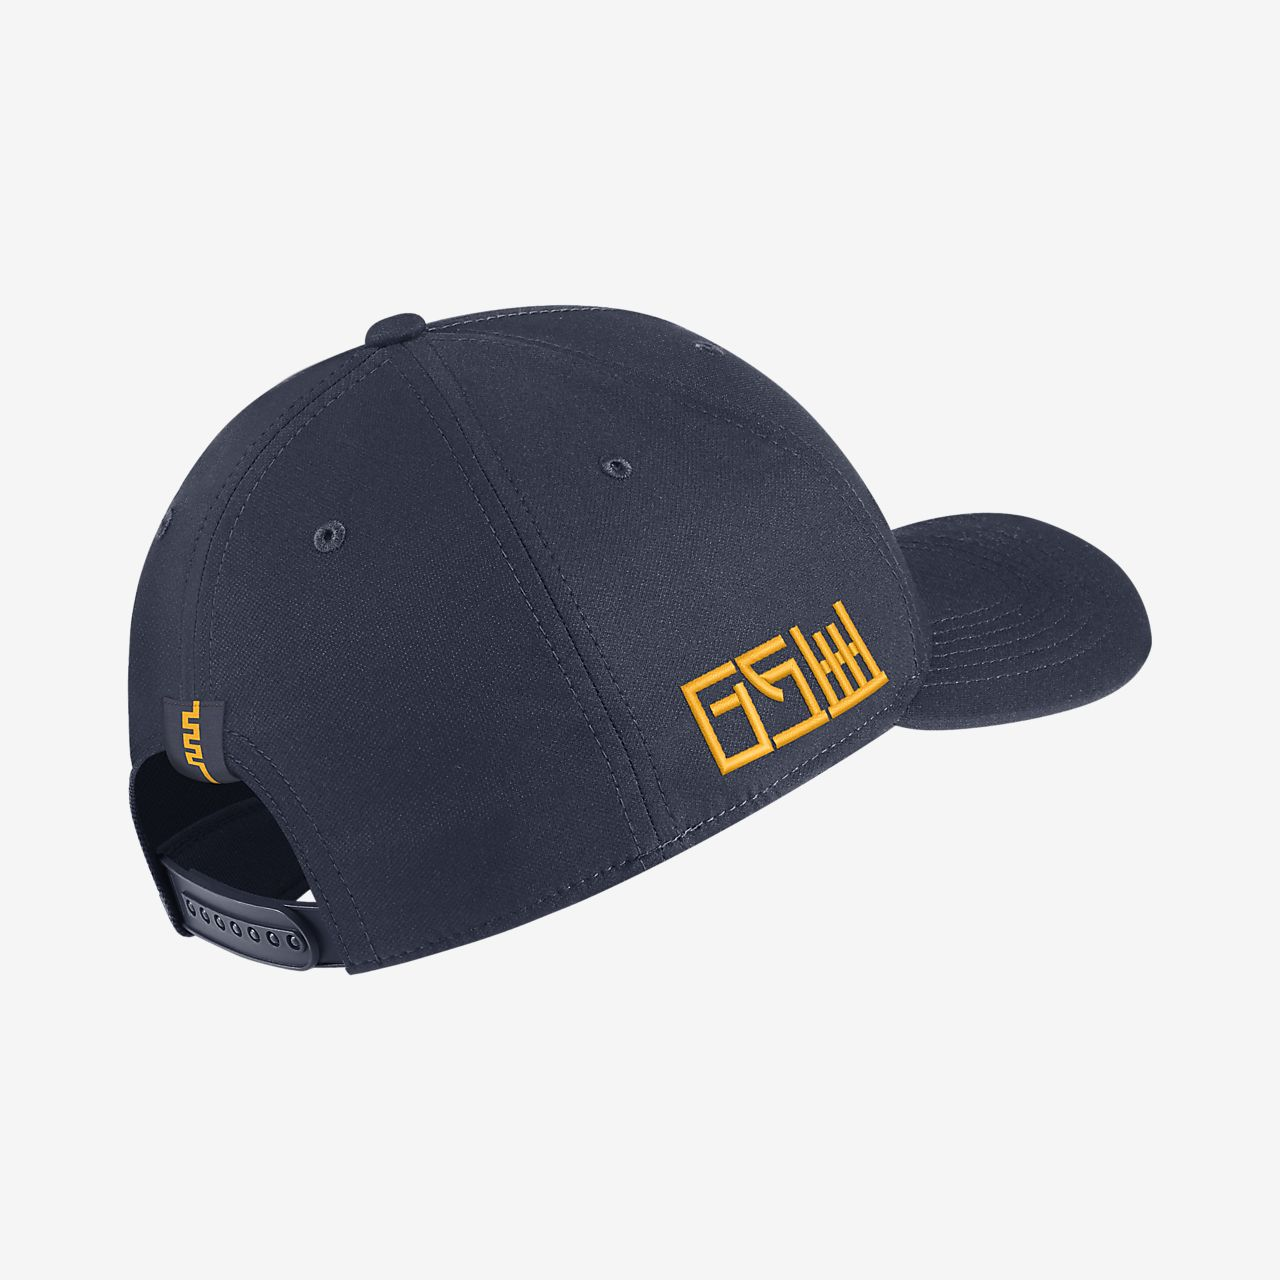 d09d7accff2 Golden State Warriors City Edition Nike AeroBill Classic99 NBA Hat ...